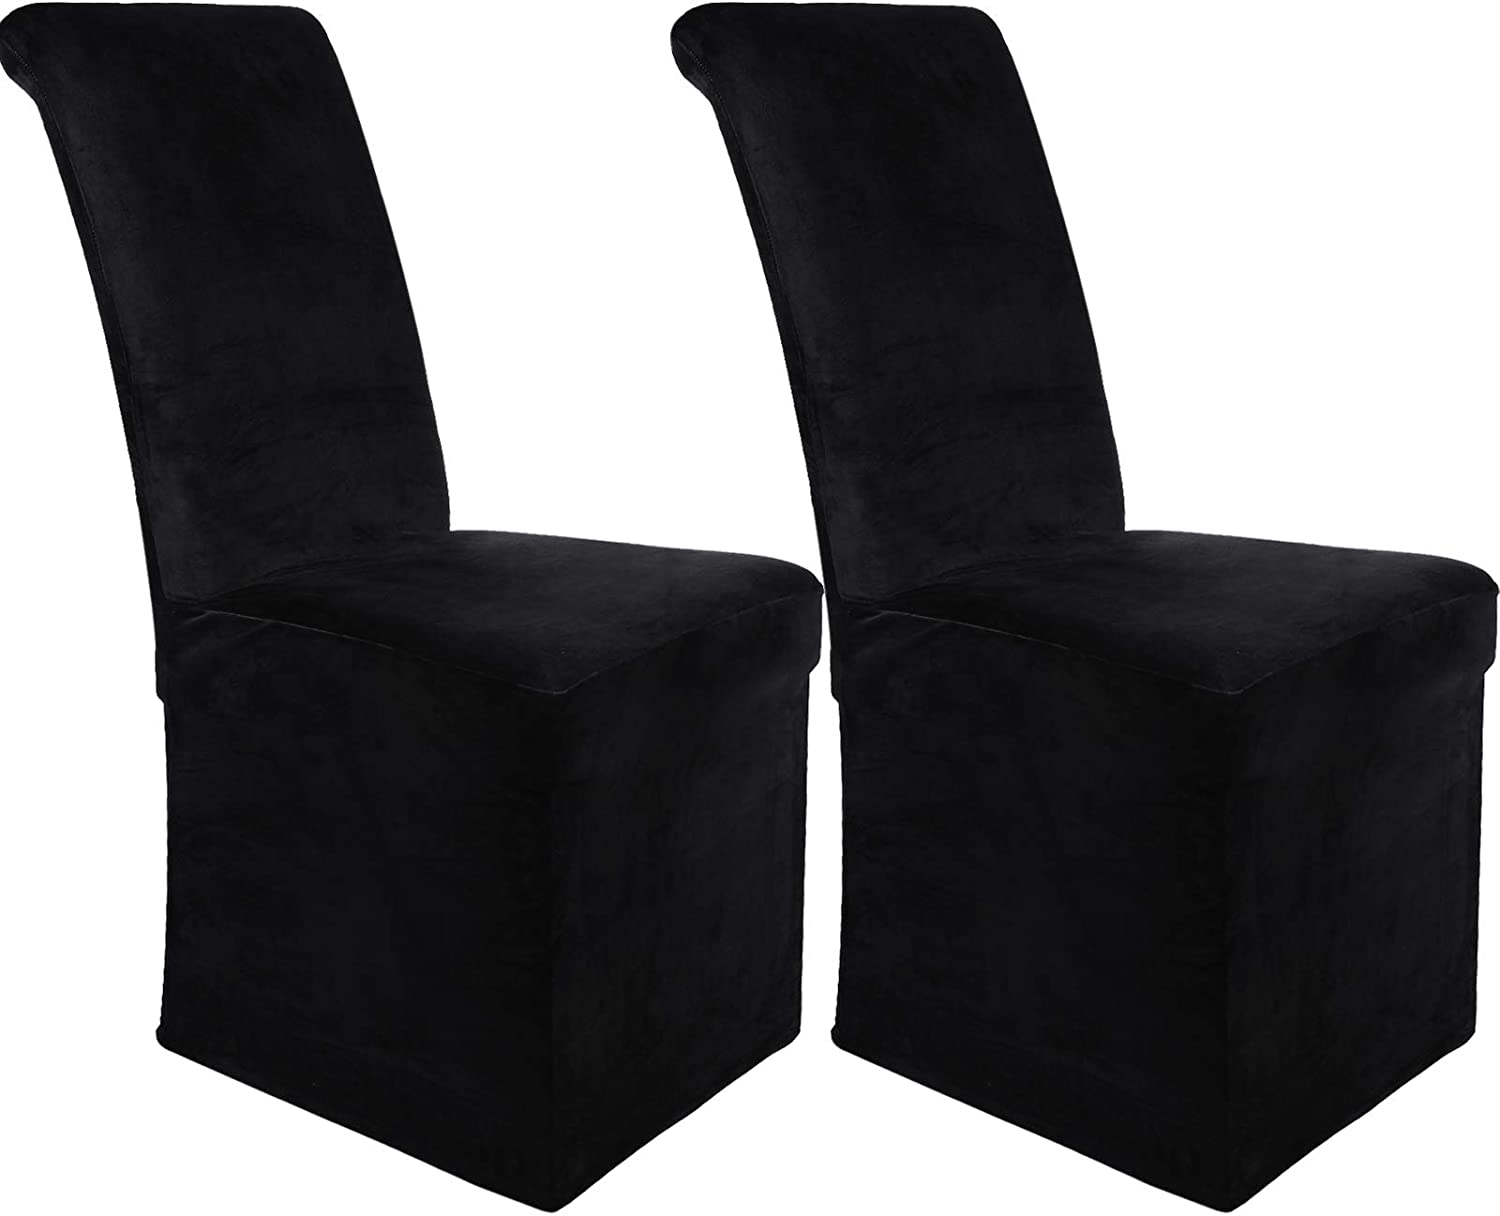 Colorxy Velvet Stretch Chair Covers, Dining Room Slipcovers